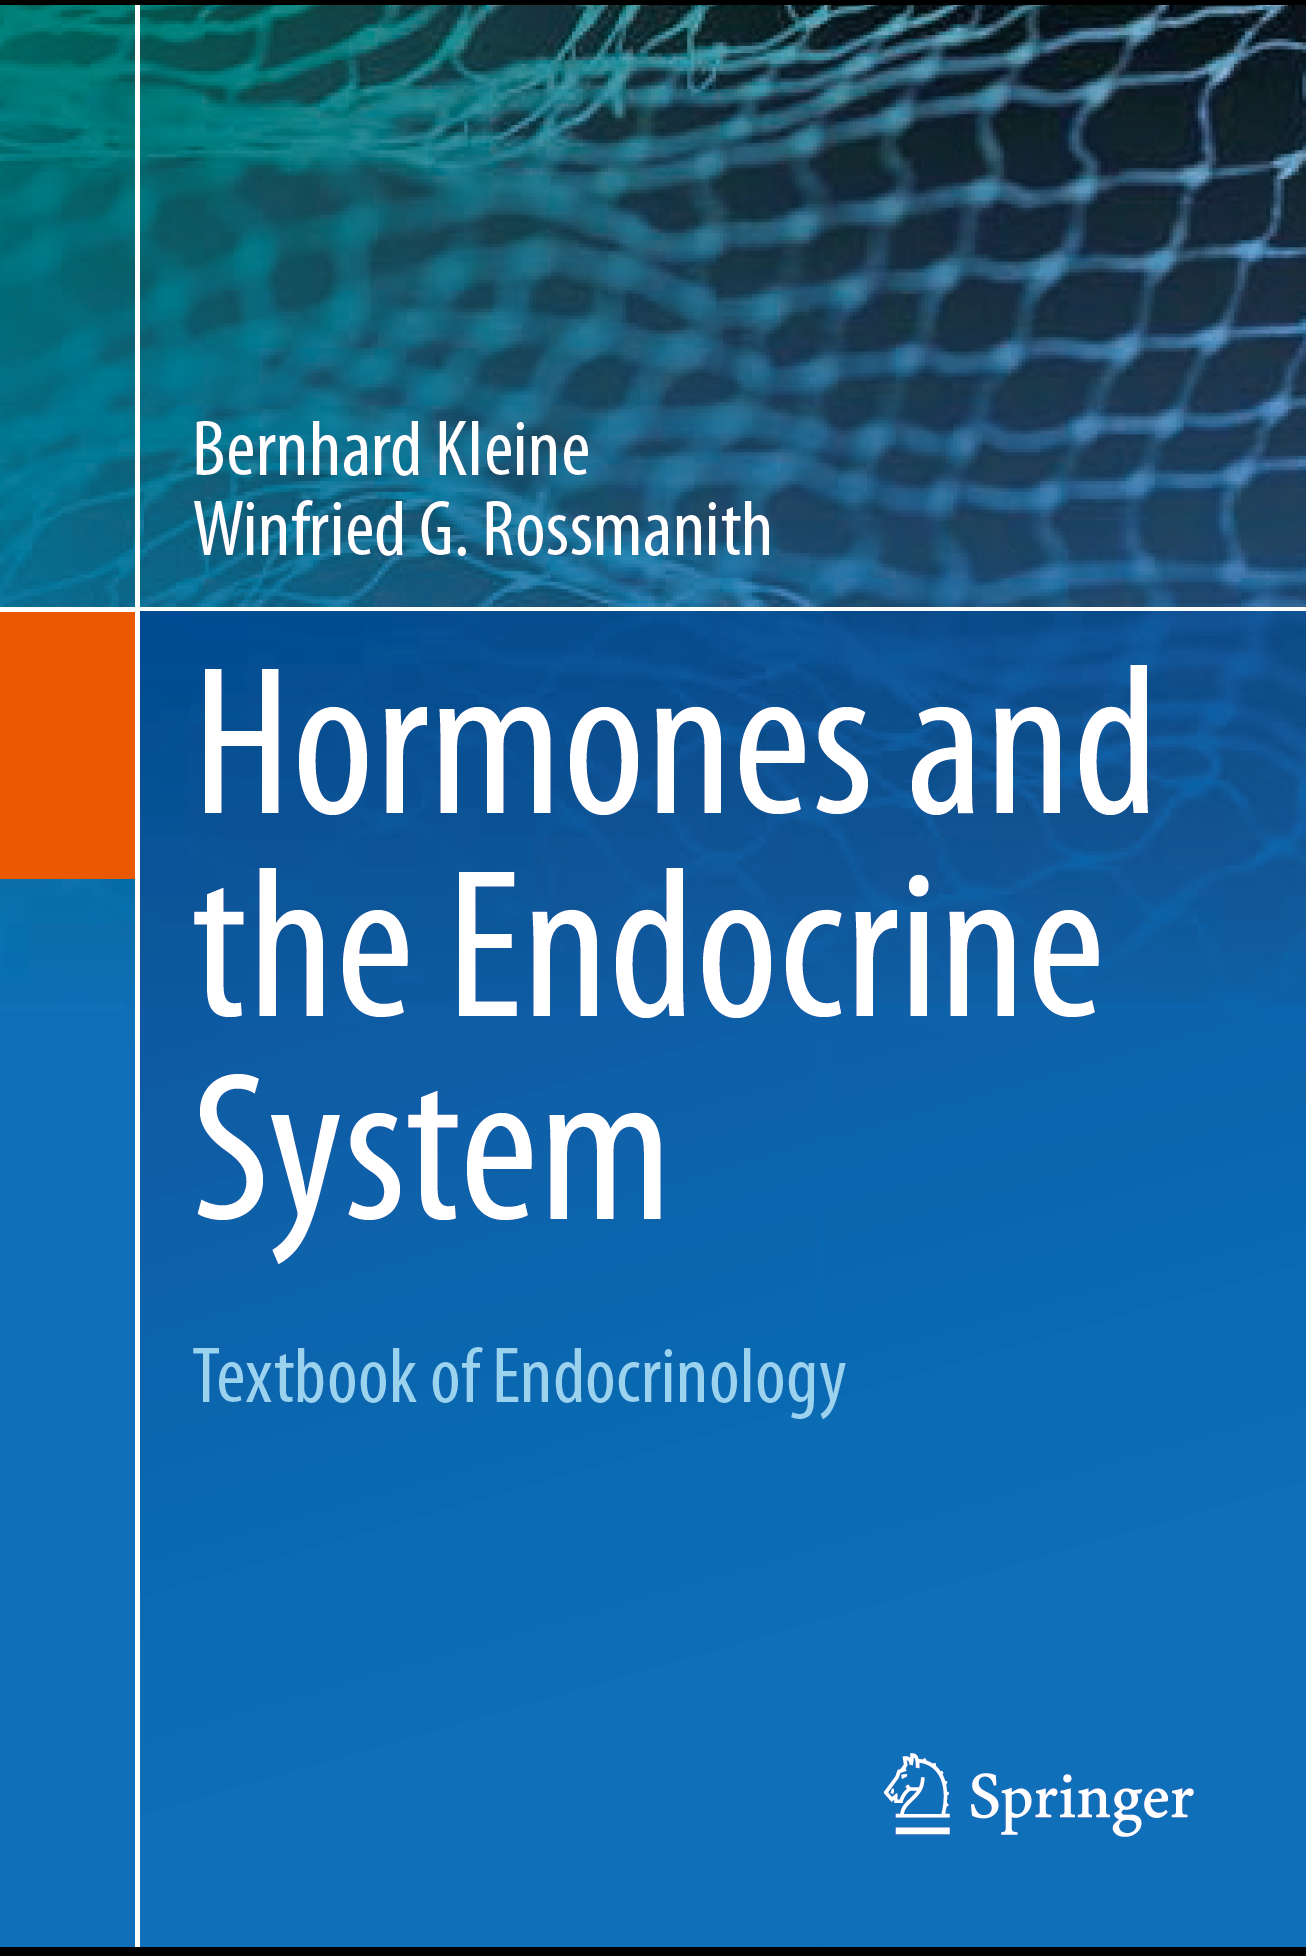 HOrmones and the Endocrines System